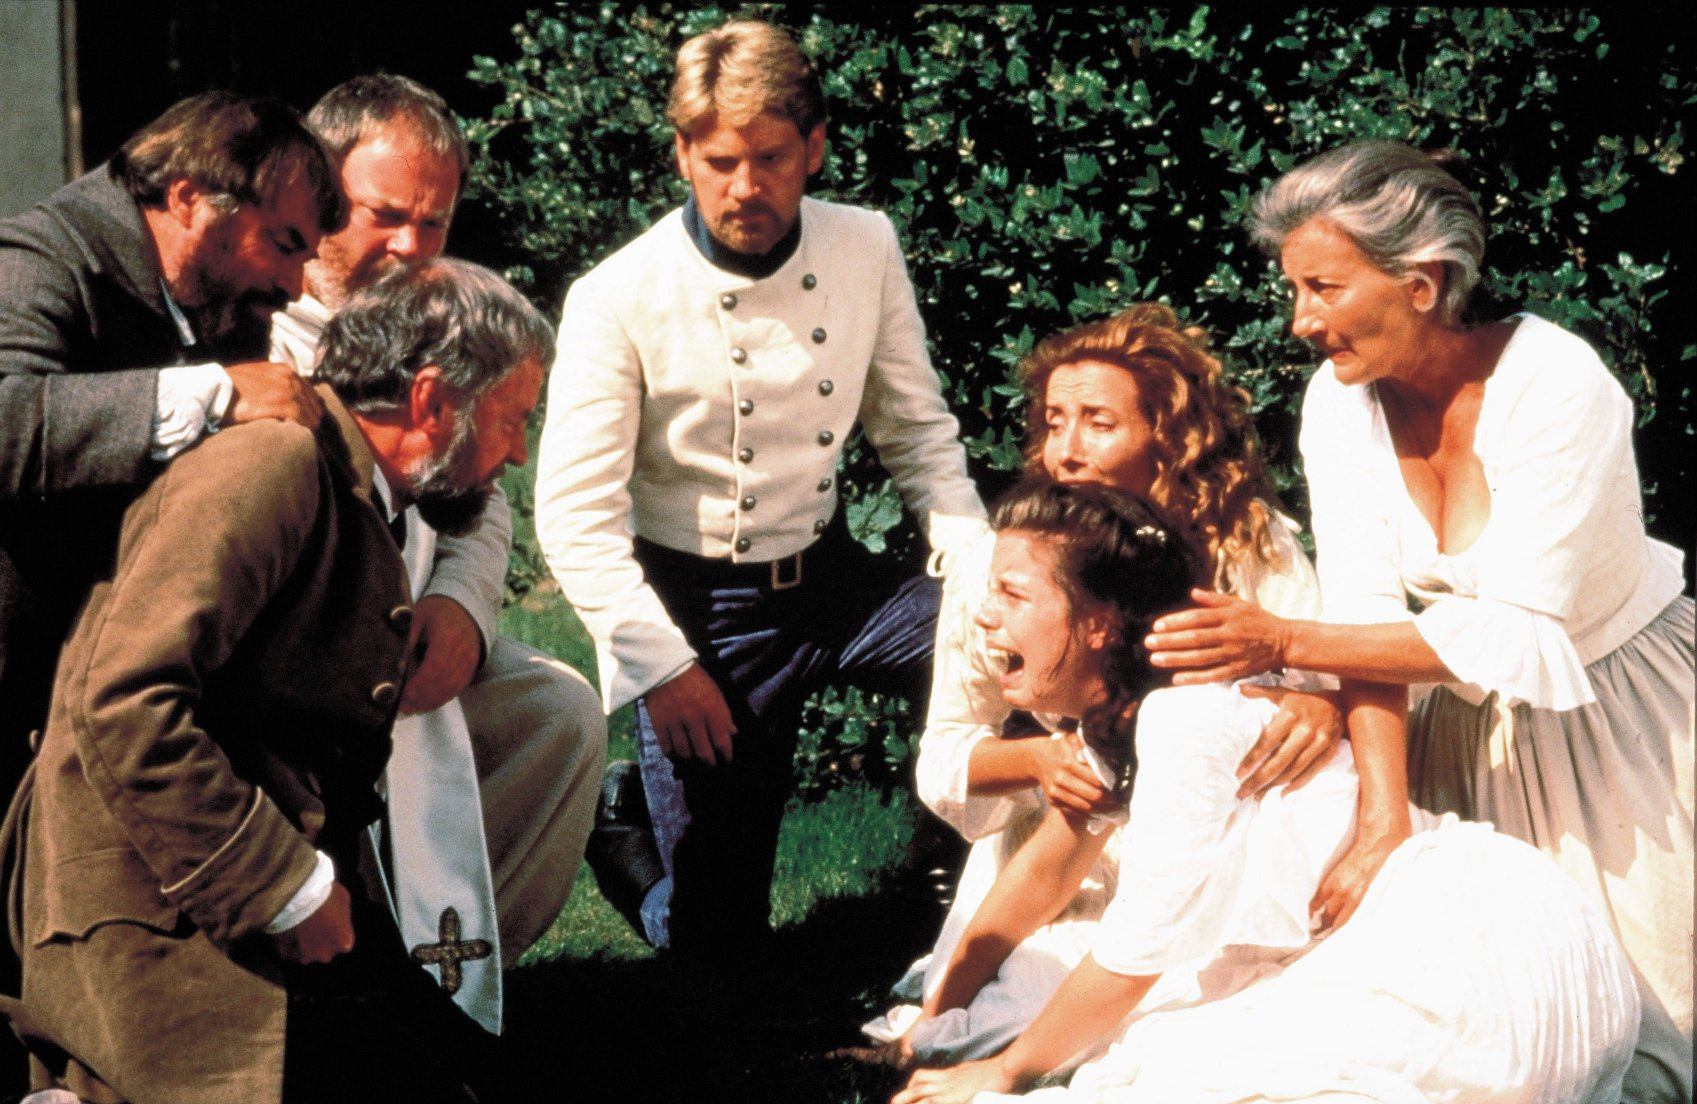 an analysis of the distinct aura of greek myth in kenneth branghs film adaptation of much ado about  A list of every word of the year selection released by dictionarycom dictionarycom's first word of the year was chosen in 2010.